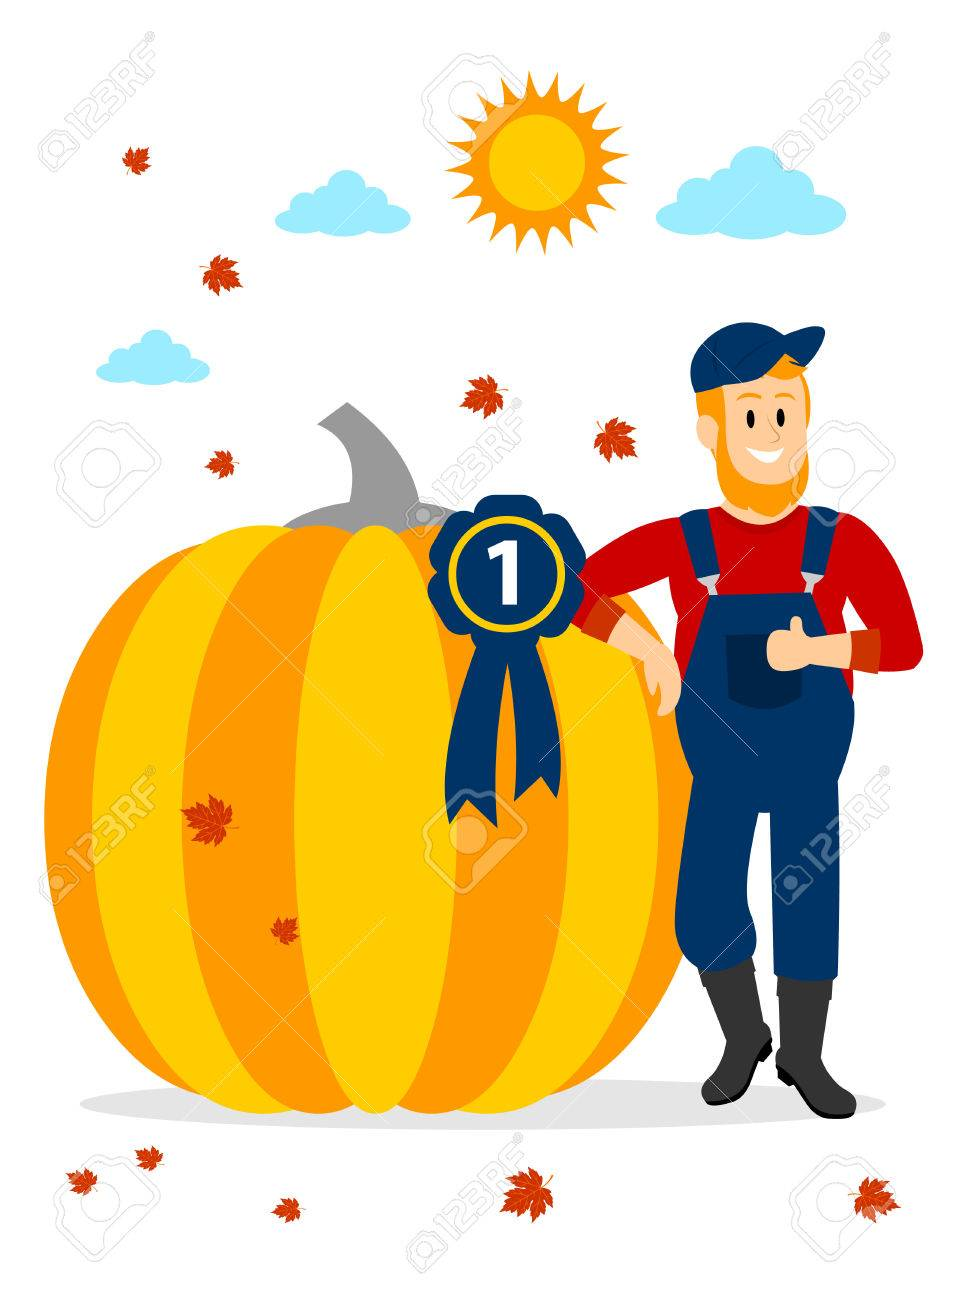 medium resolution of farmer winning pumpkin contest at the first place clipart stock vector 57577116